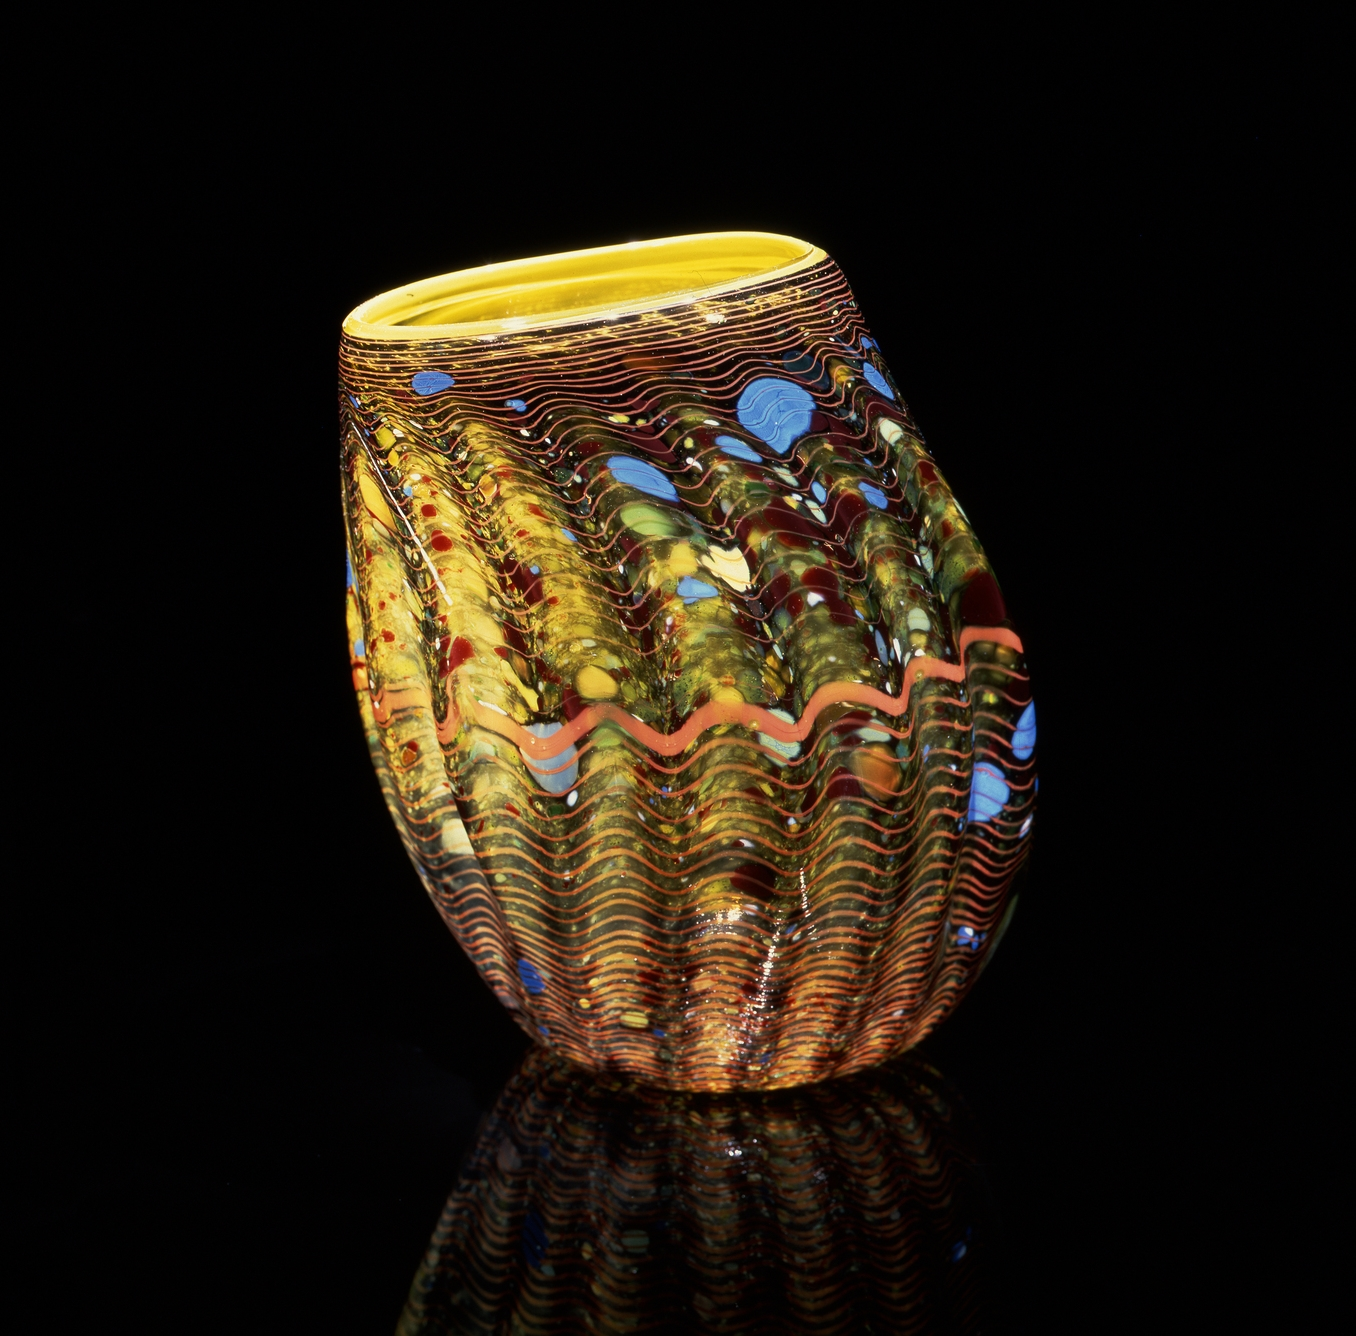 Dale Chihuly, Chinese Yellow Macchia with Peach Stripes (1982, glass, 11 x 9 x 8 inches), DC.70